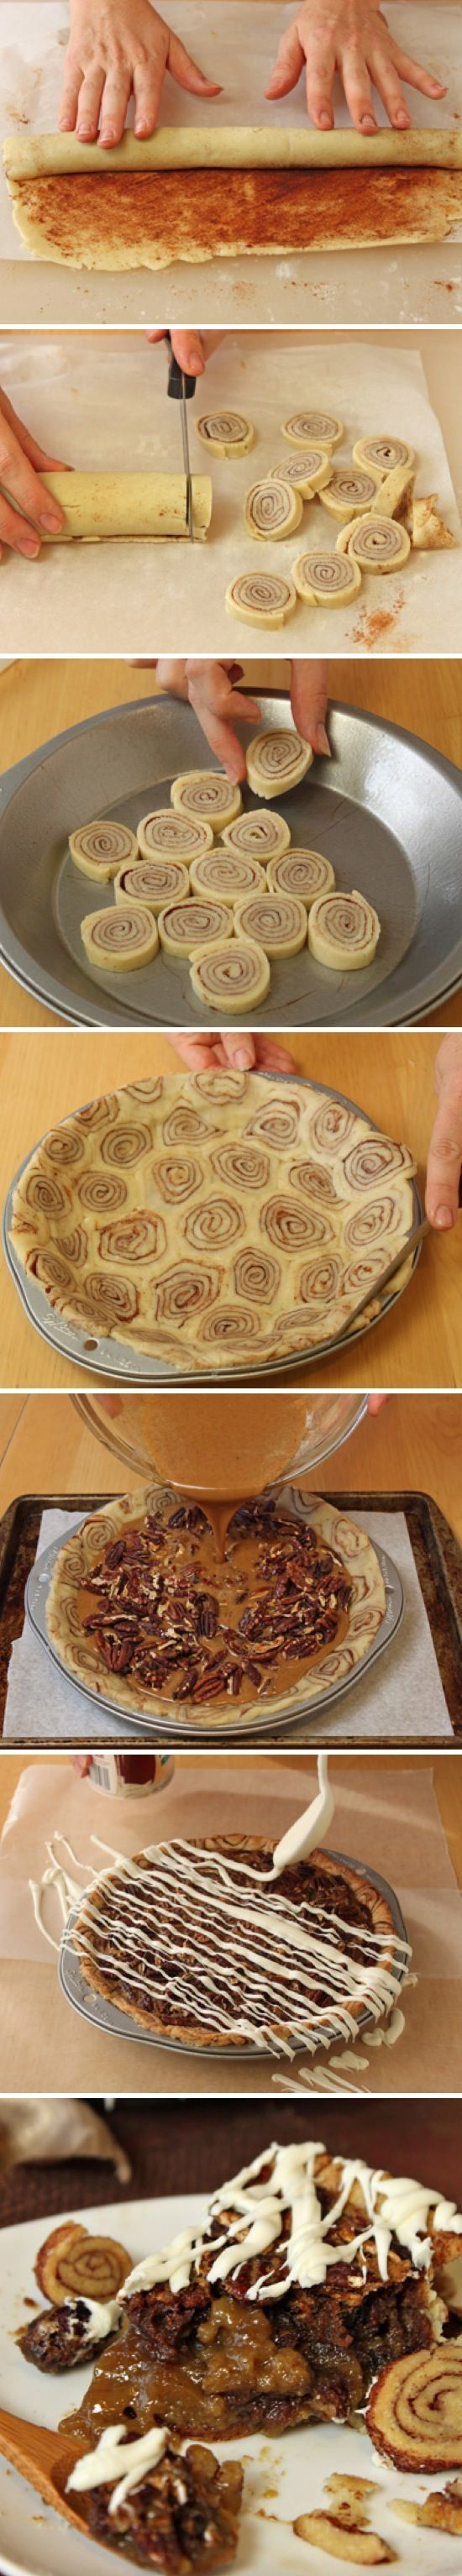 Cinnamon Bun Pie crust ....